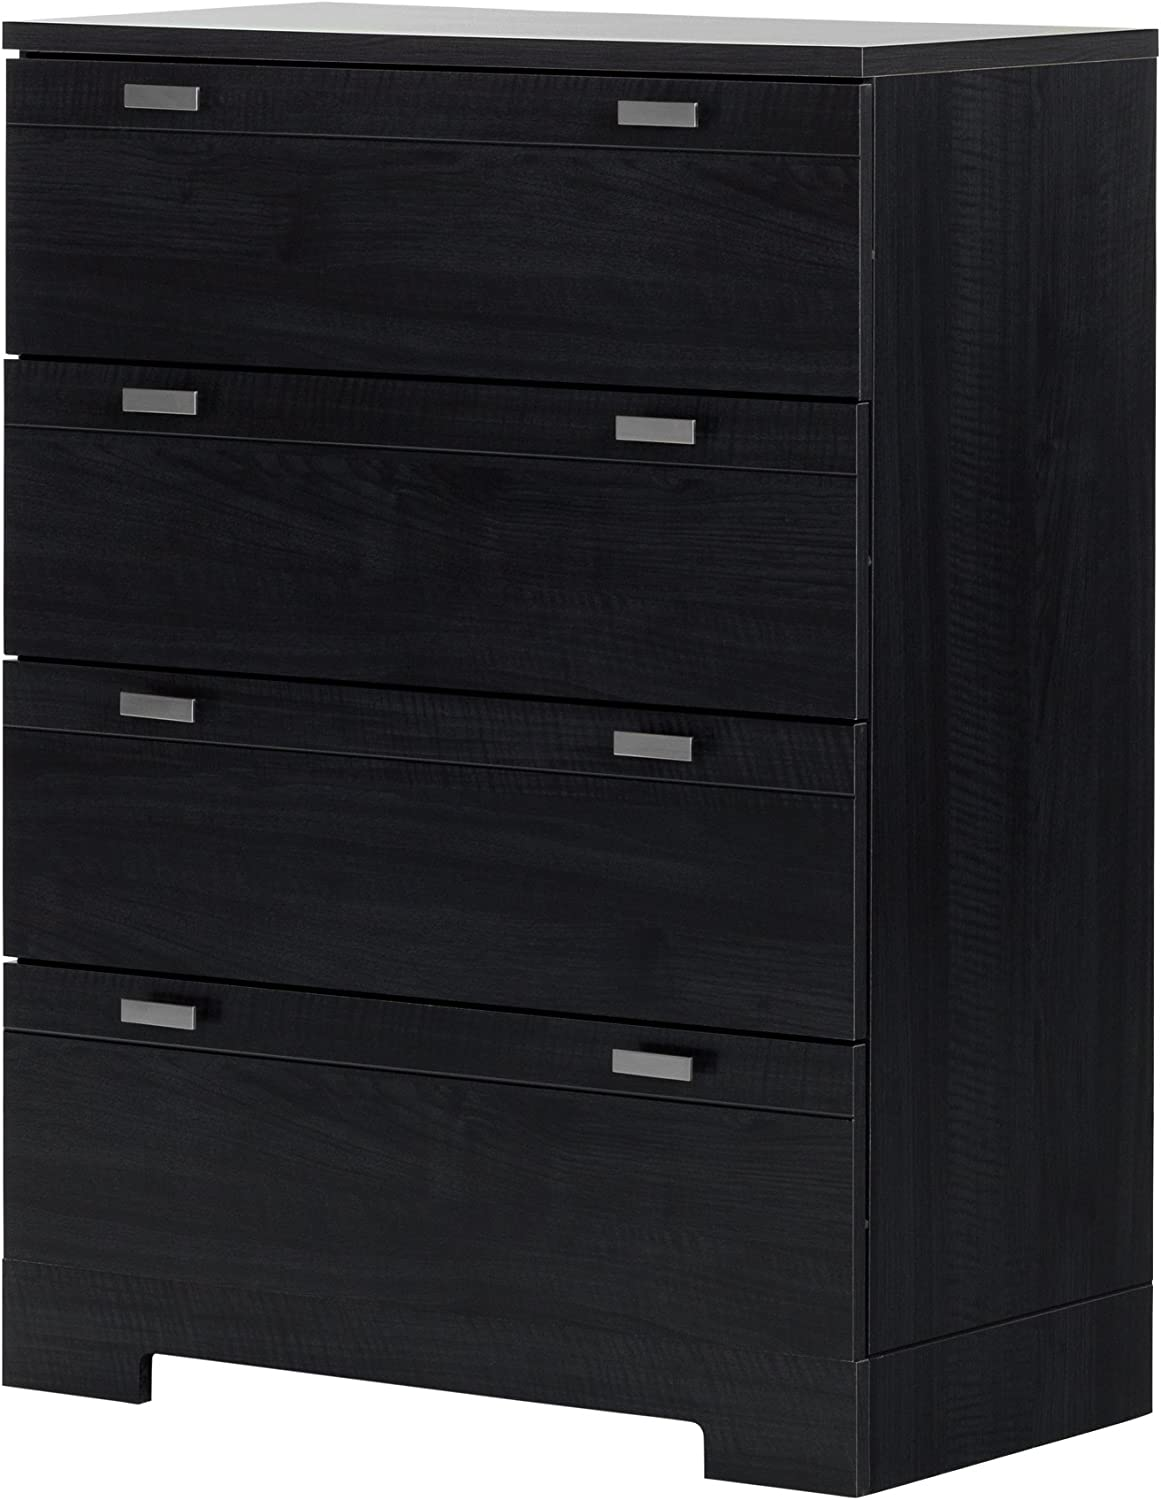 South Shore Furniture 10259 Reevo 4-Drawer Chest, Black Onyx